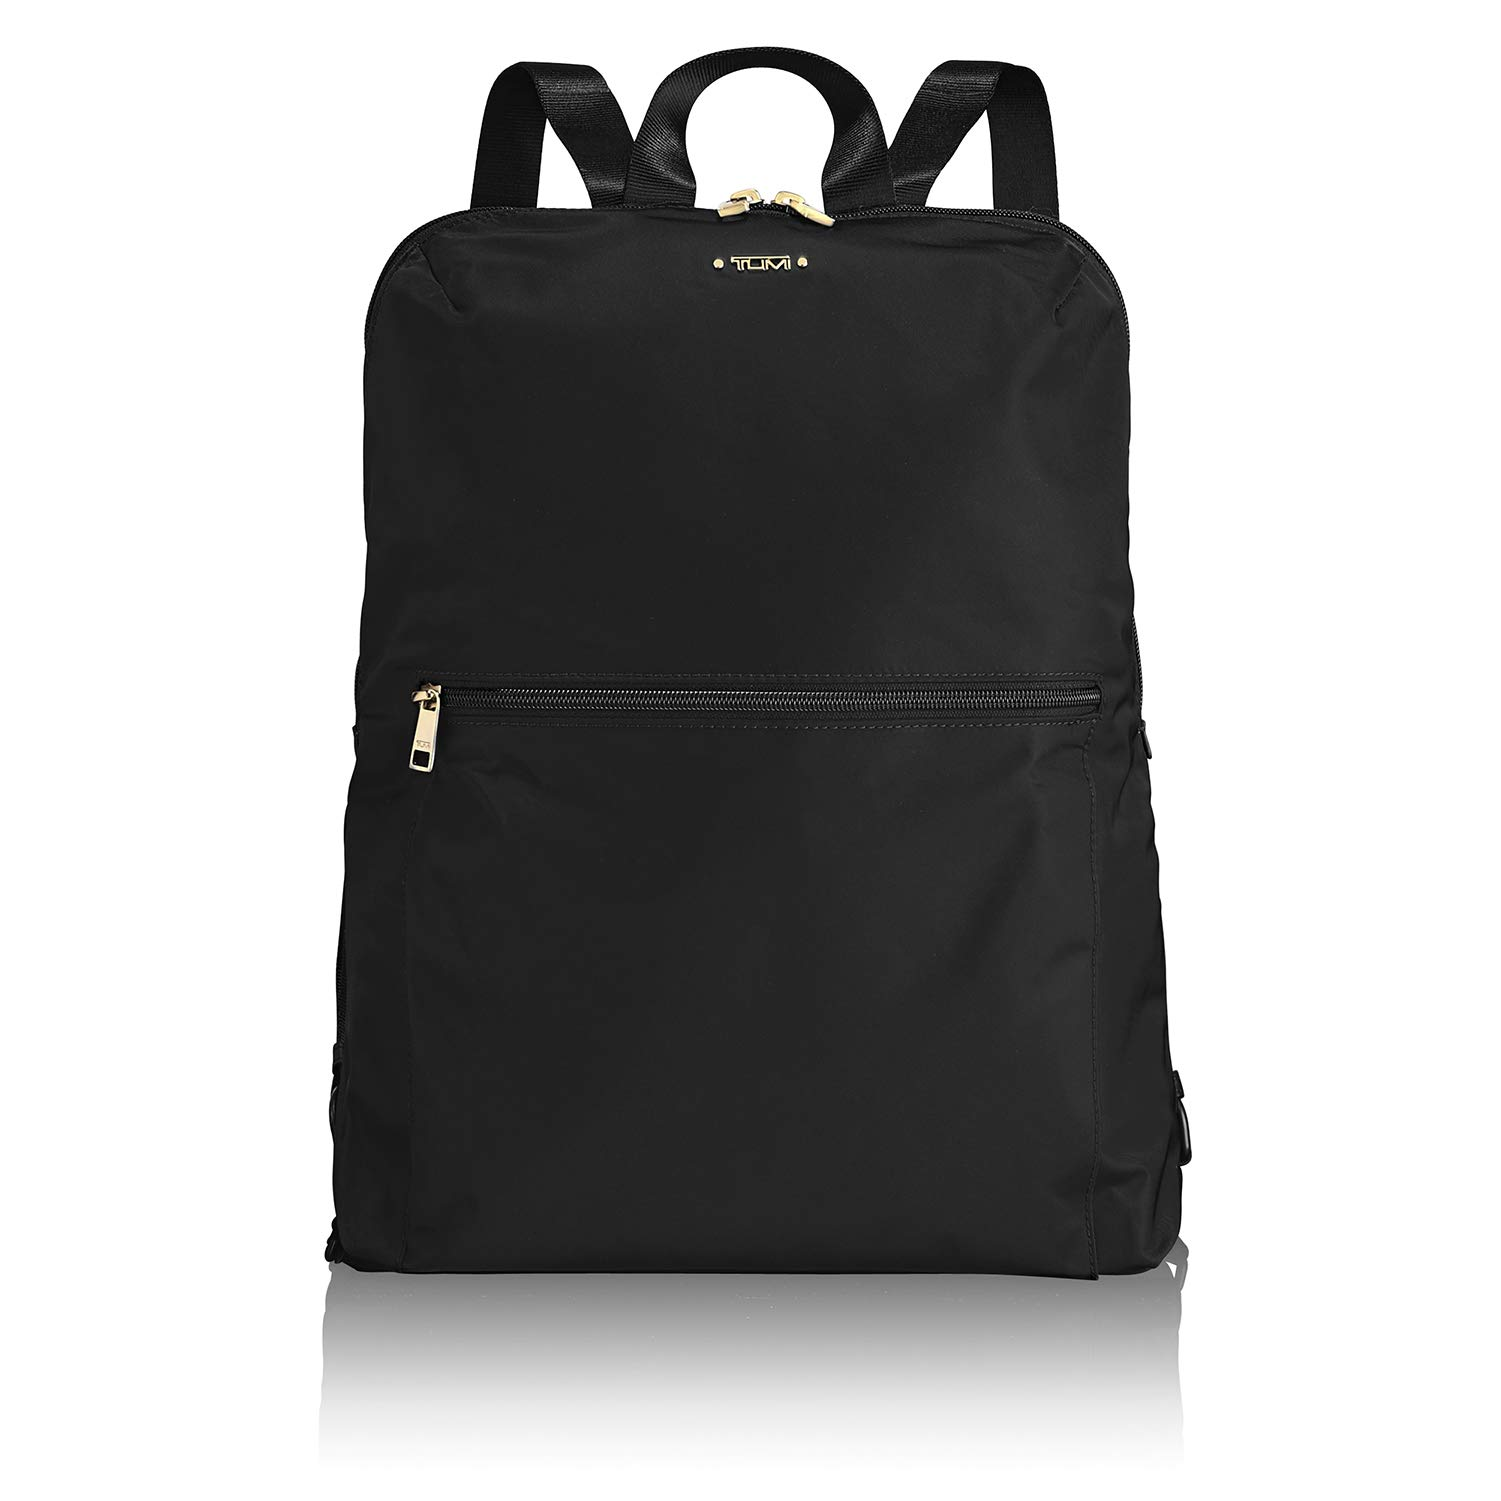 TUMI - Voyageur Just In Case Backpack - Lightweight Foldable Packable Travel Daypack for Women - Black by TUMI